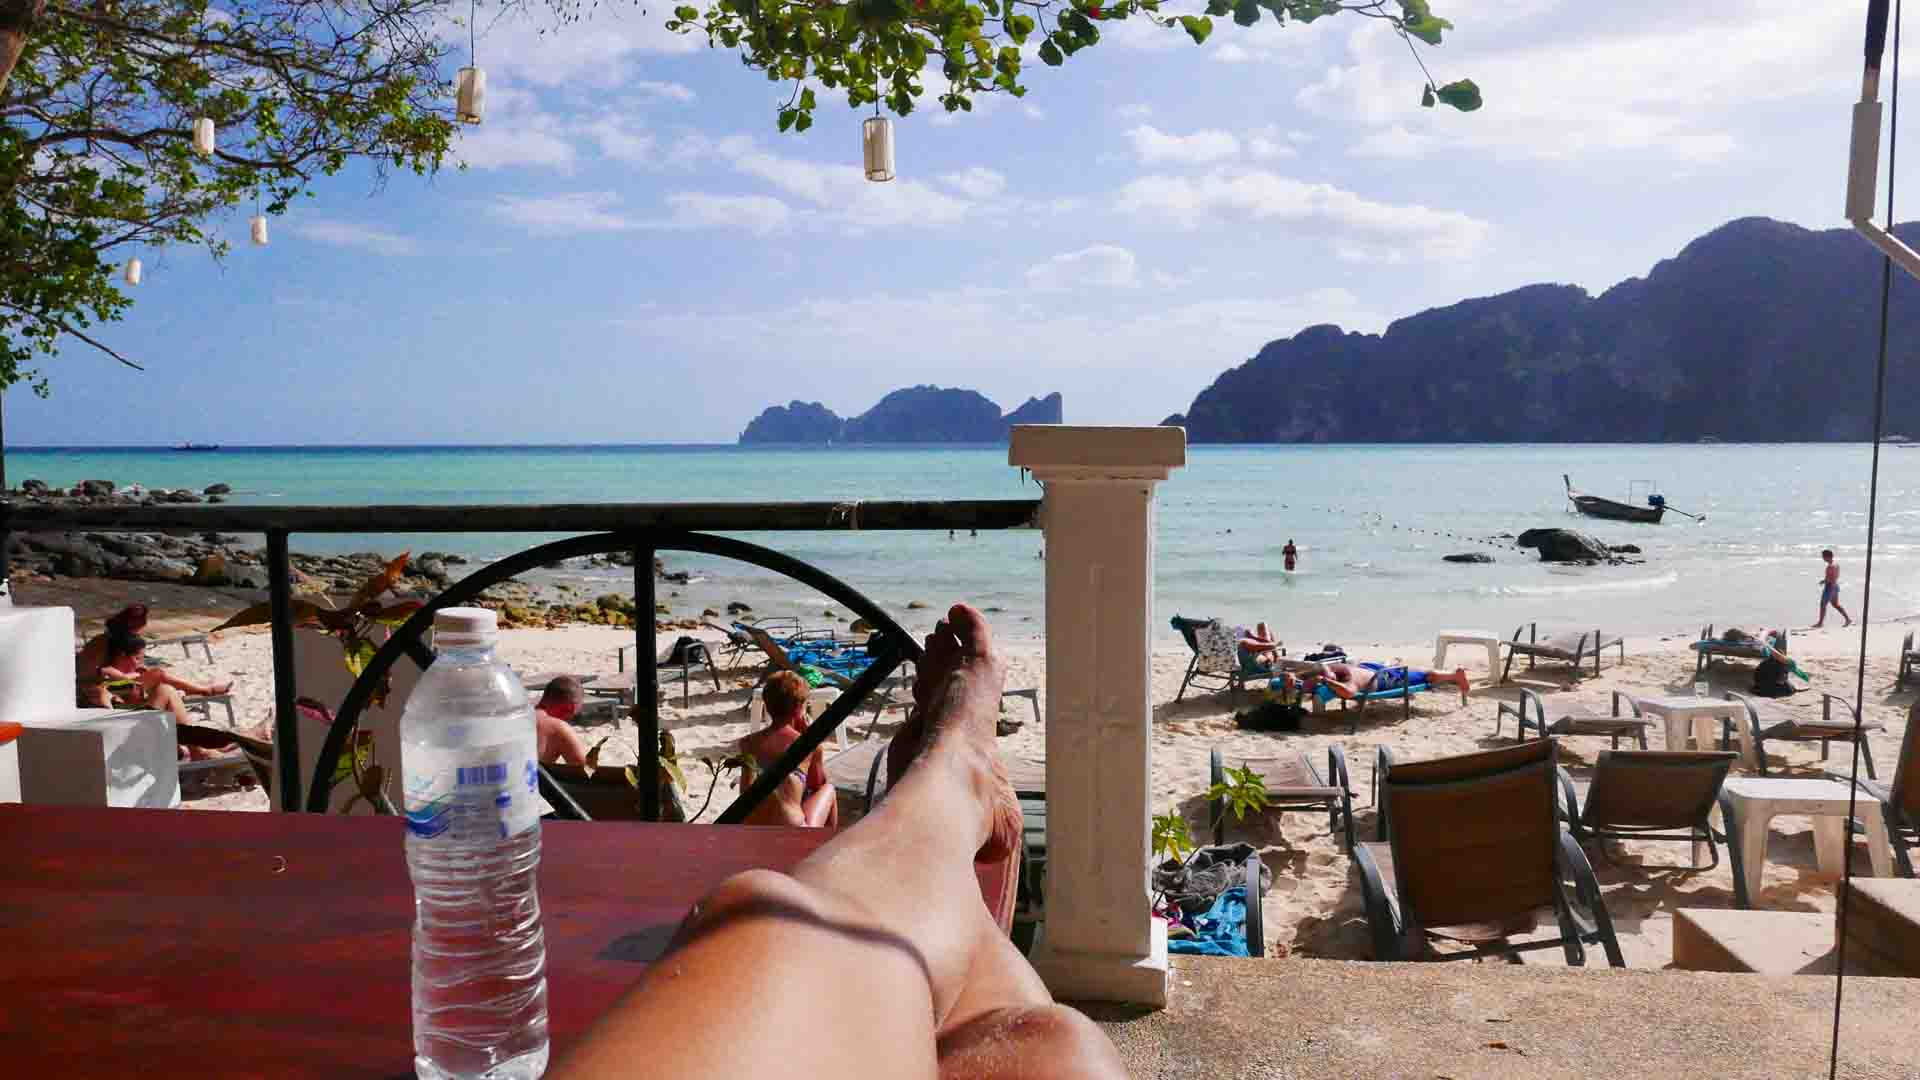 where is koh phi phi island in thailand